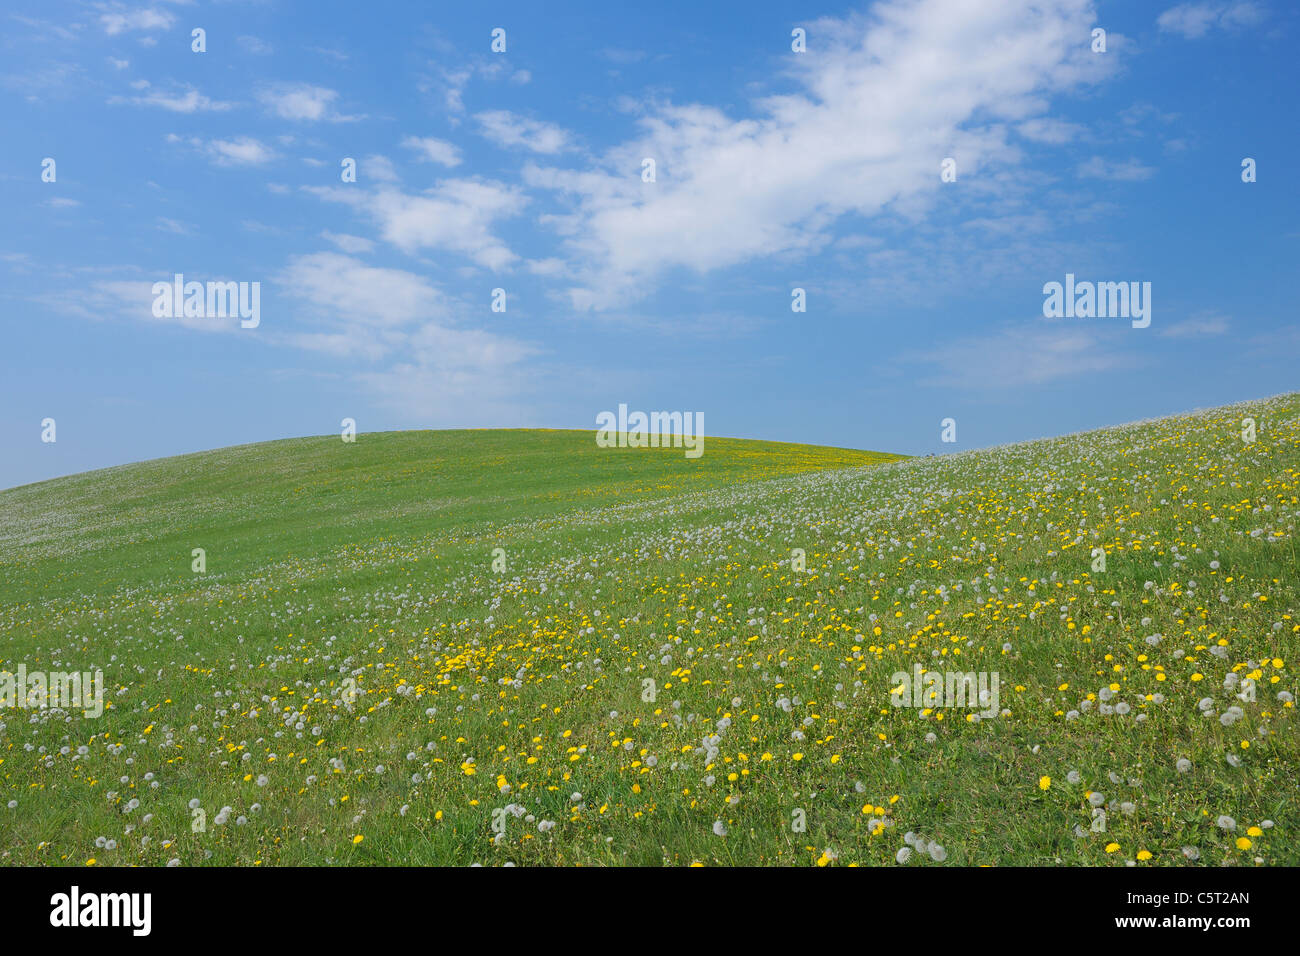 Germany, Mecklenburg-Vorpommern, View of meadow with dandelion field - Stock Image